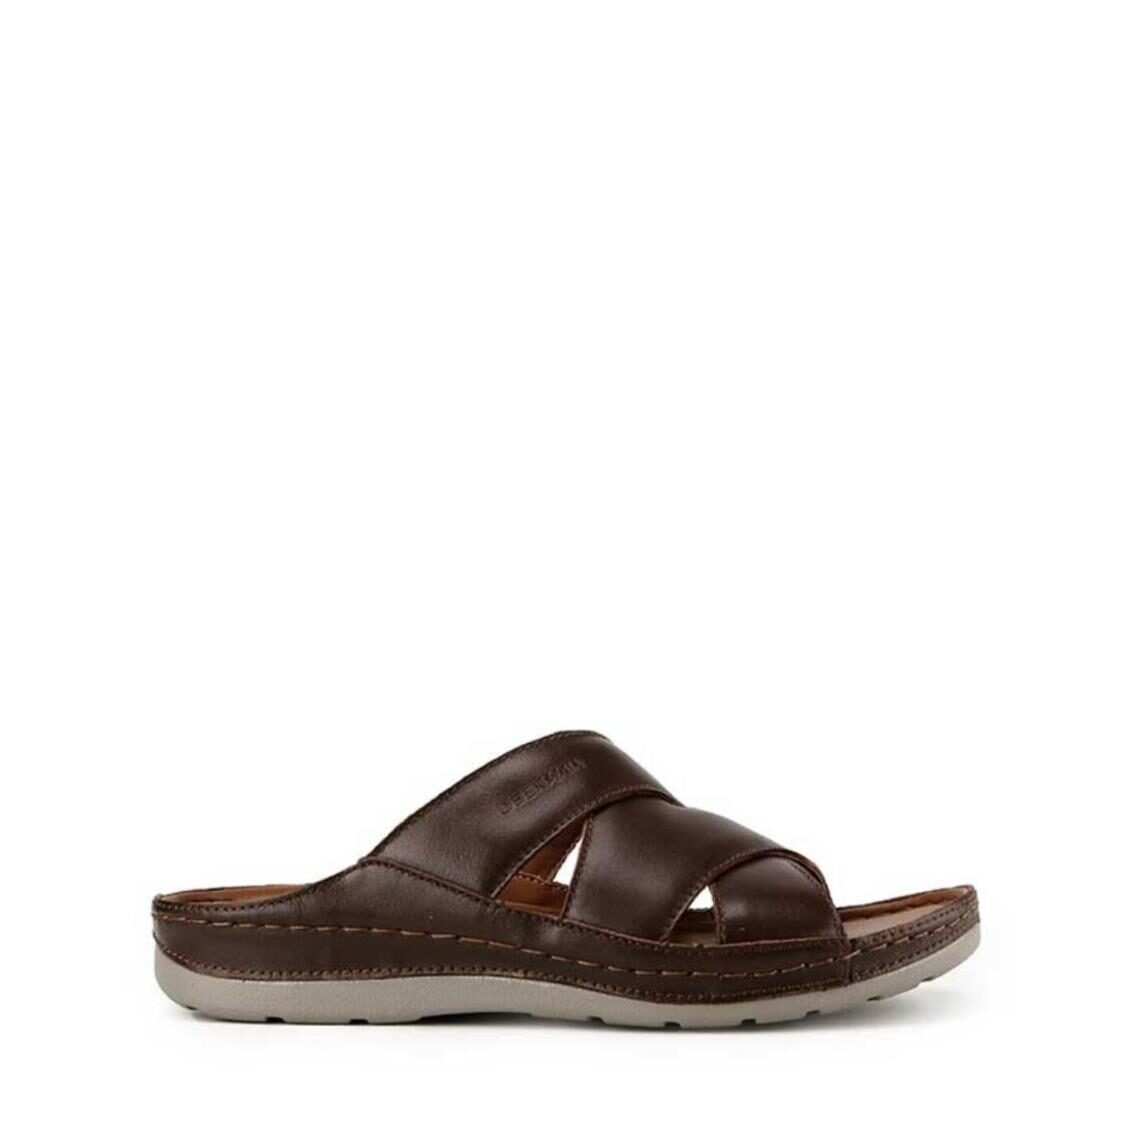 Gino Phips 3 Strap Brown